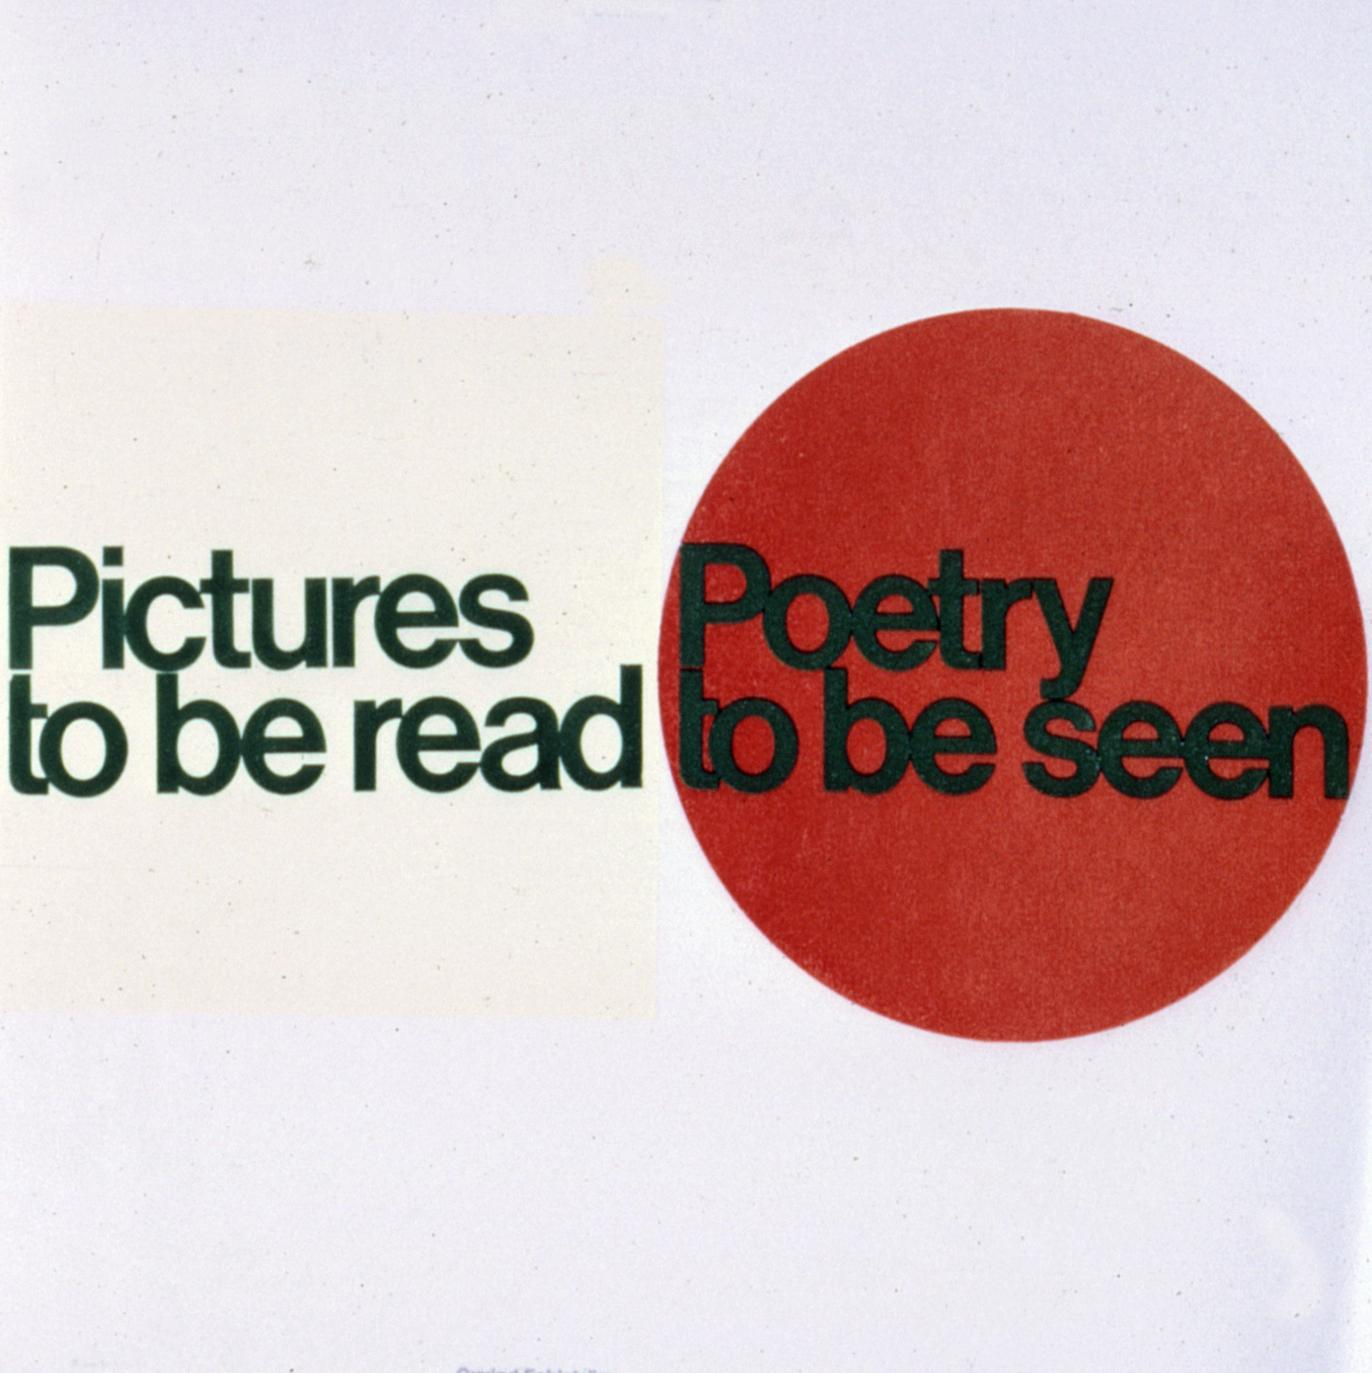 """Photograph of exhibition title wall with """"Pictures to be read"""" on the left, in black letters on an off-white square, and """"Poetry to be seen"""" in black letters on a red circle"""